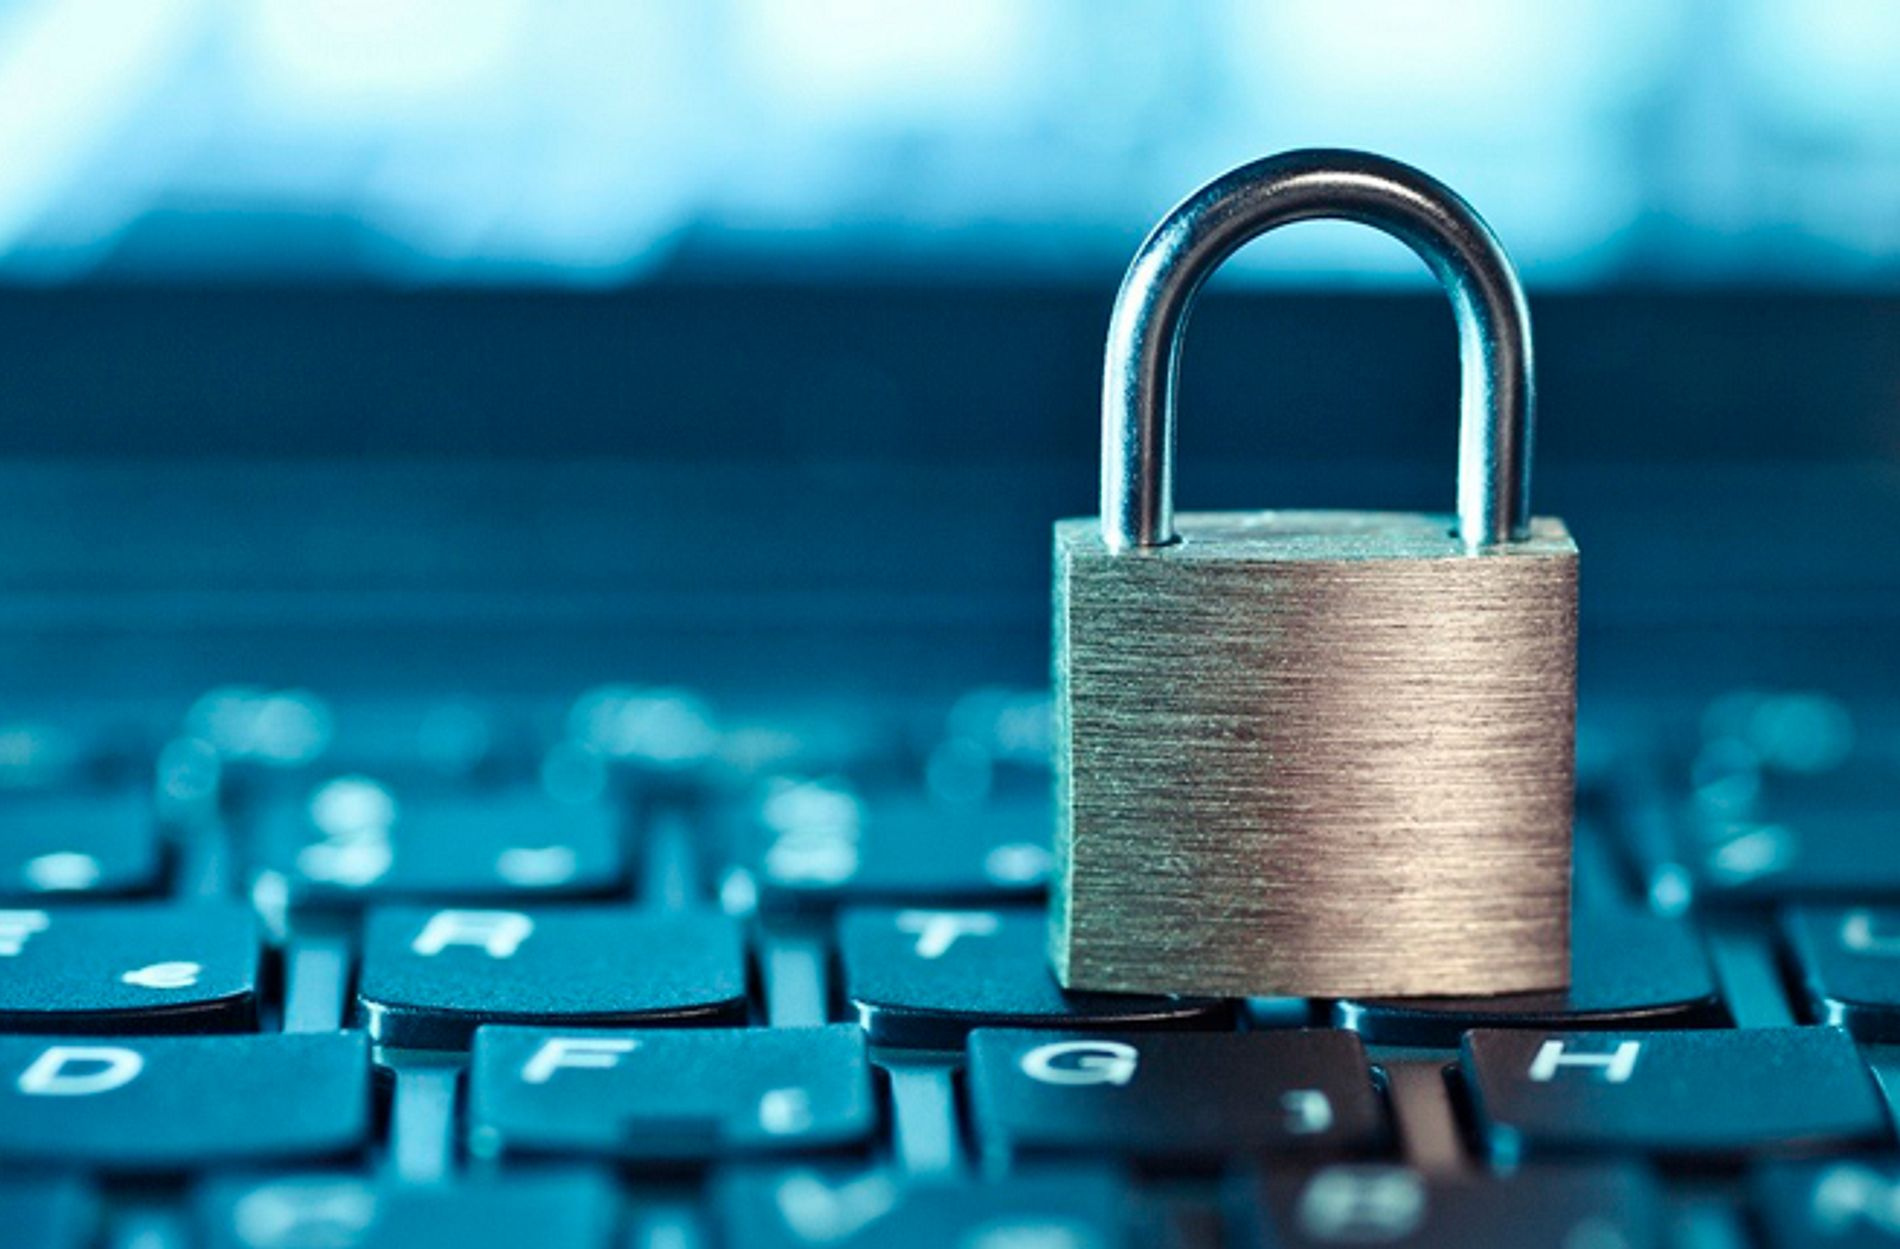 Protection network security computer and safe your data concept